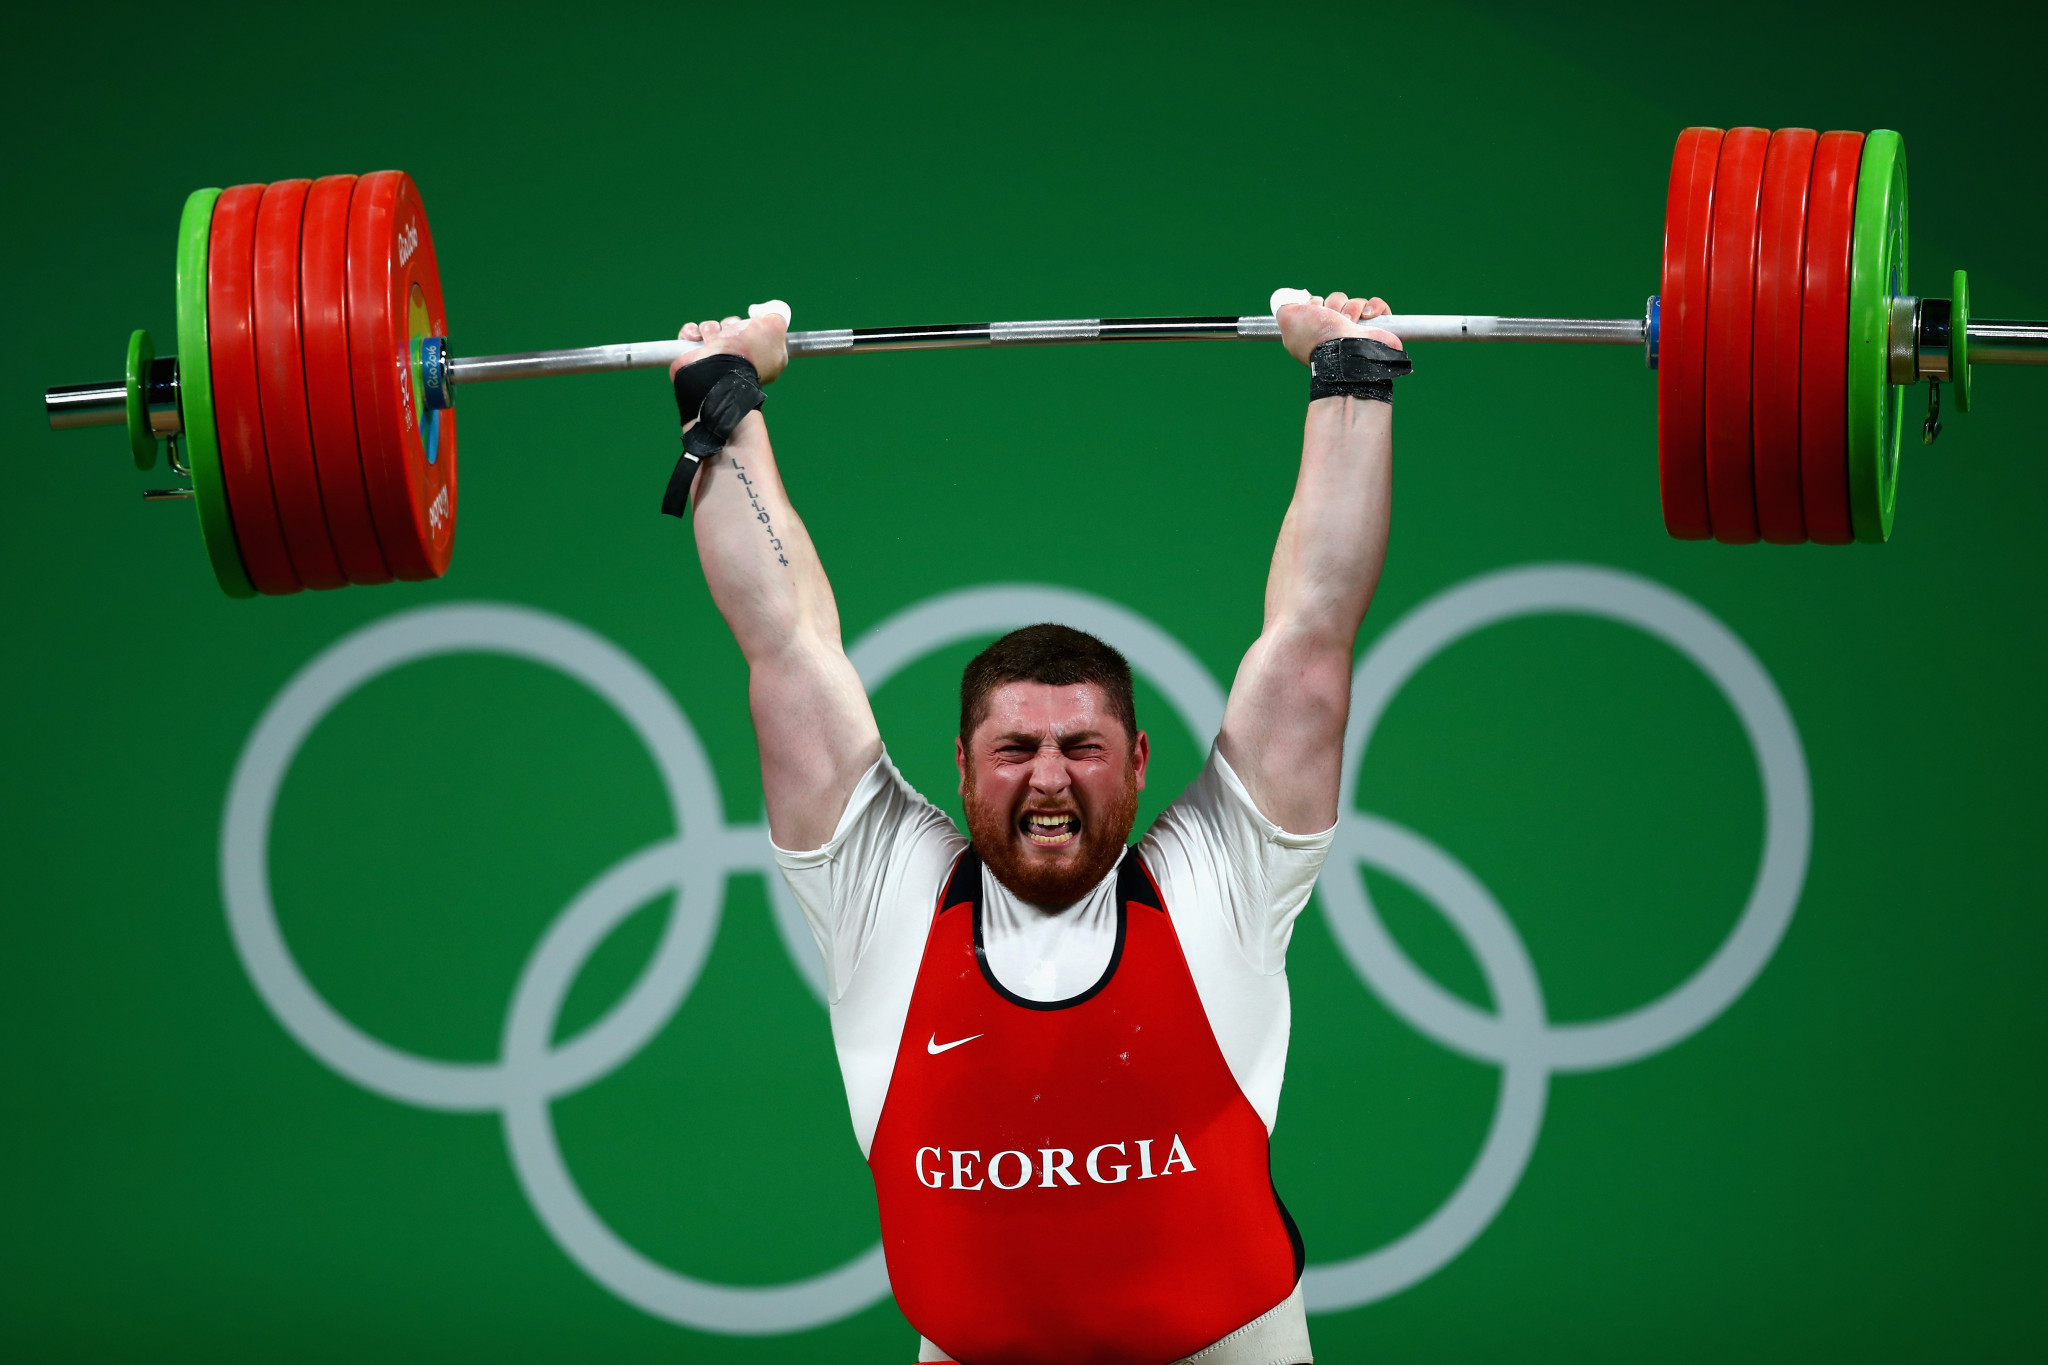 So much to look forward to - but this could be weightlifting's last time at an Olympics